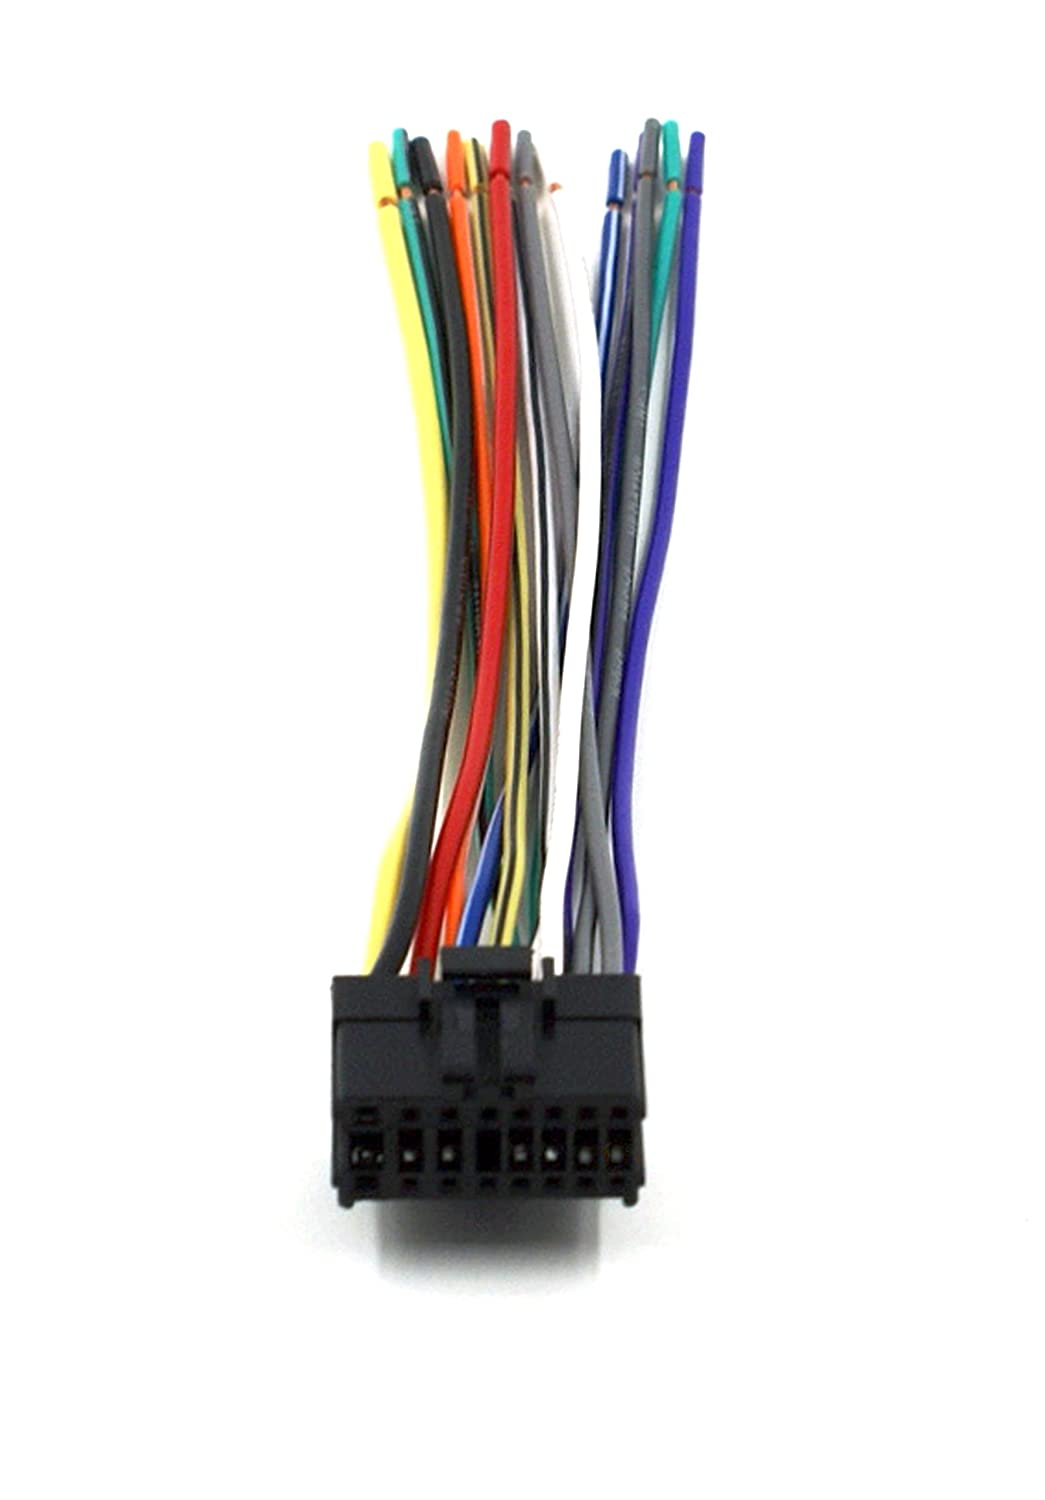 Amazon.com: DNF Pioneer Wiring Harness DEH-P4800MP DEH ... on